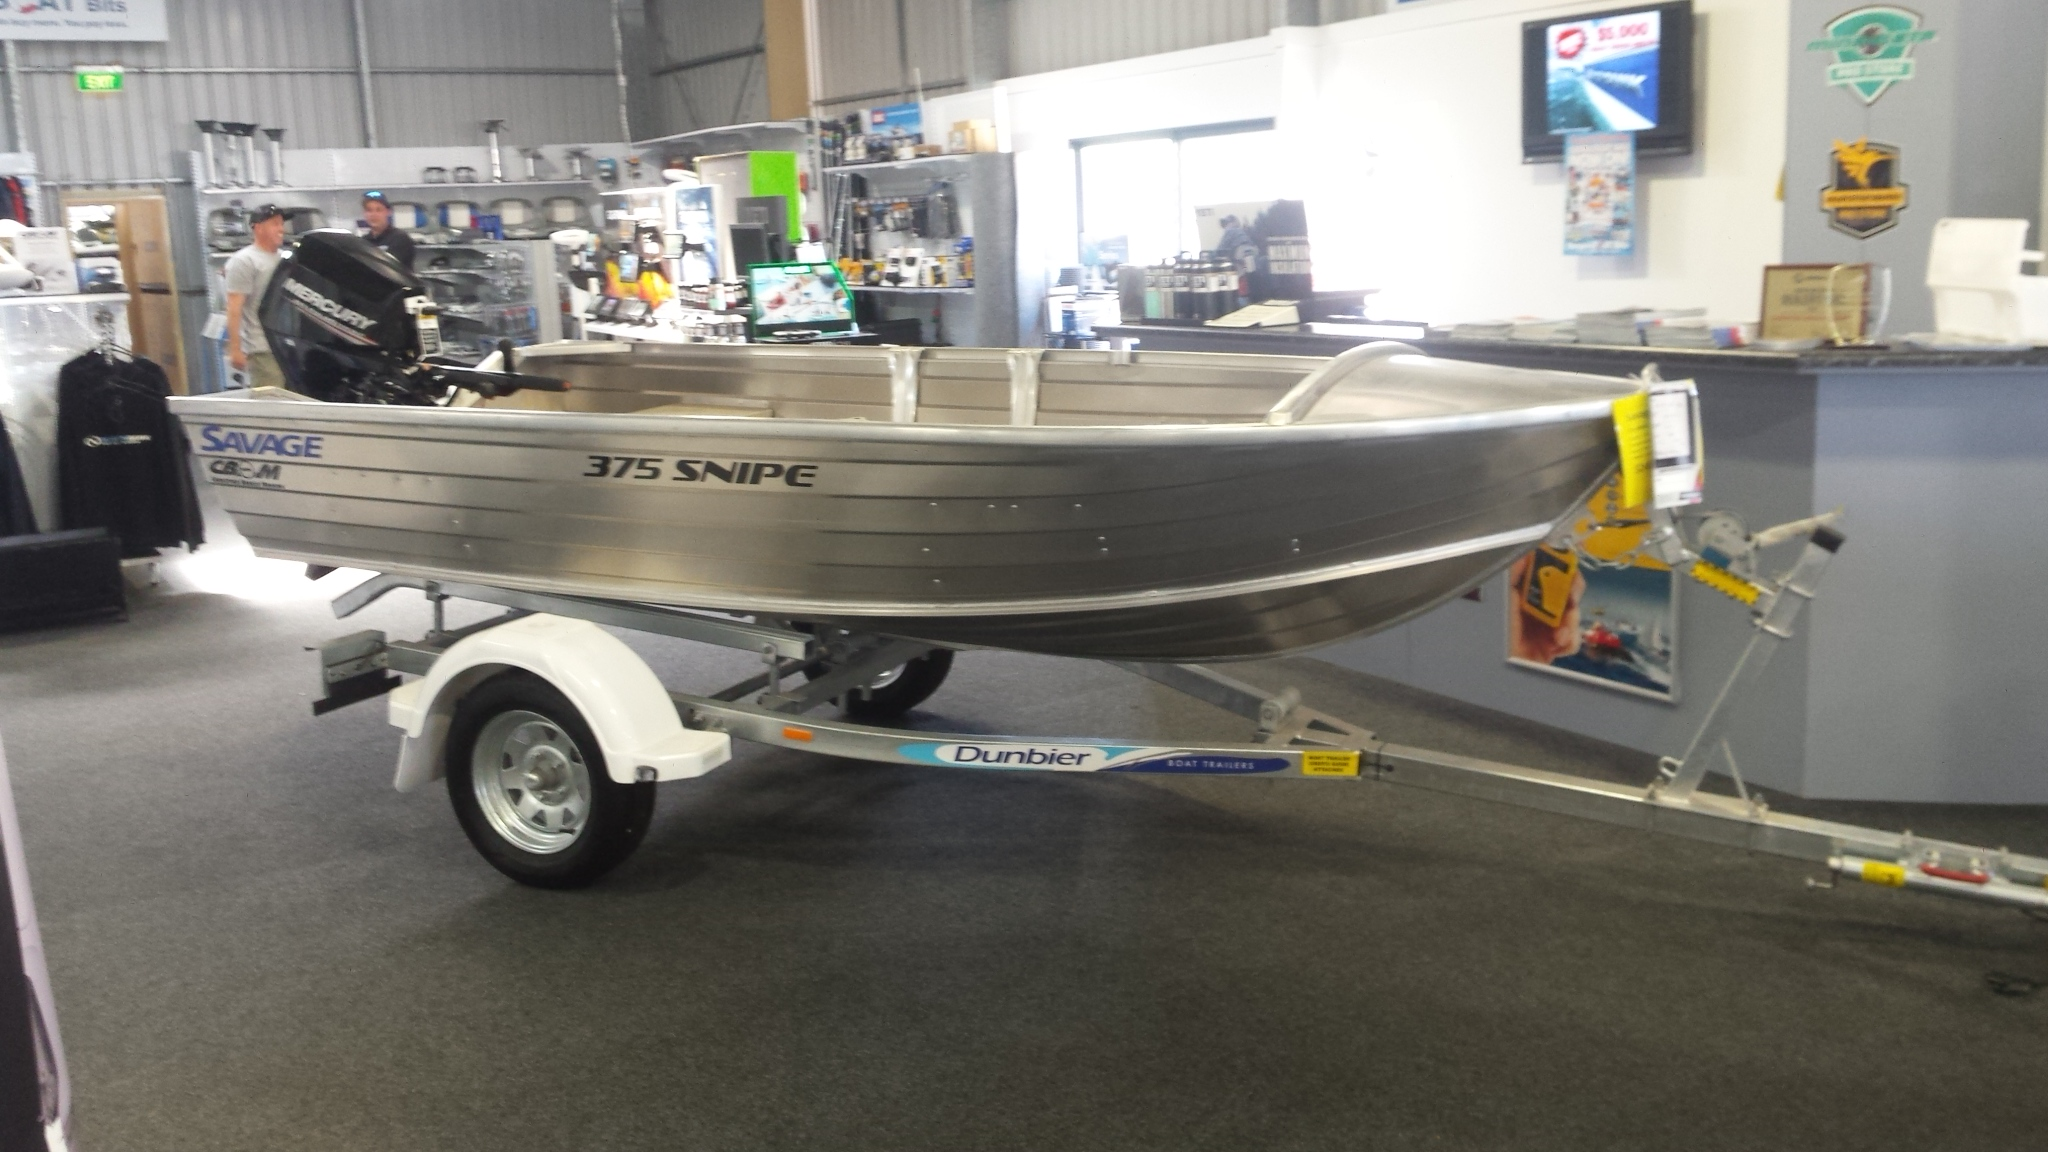 2019 Savage 375 Snipe Dinghy